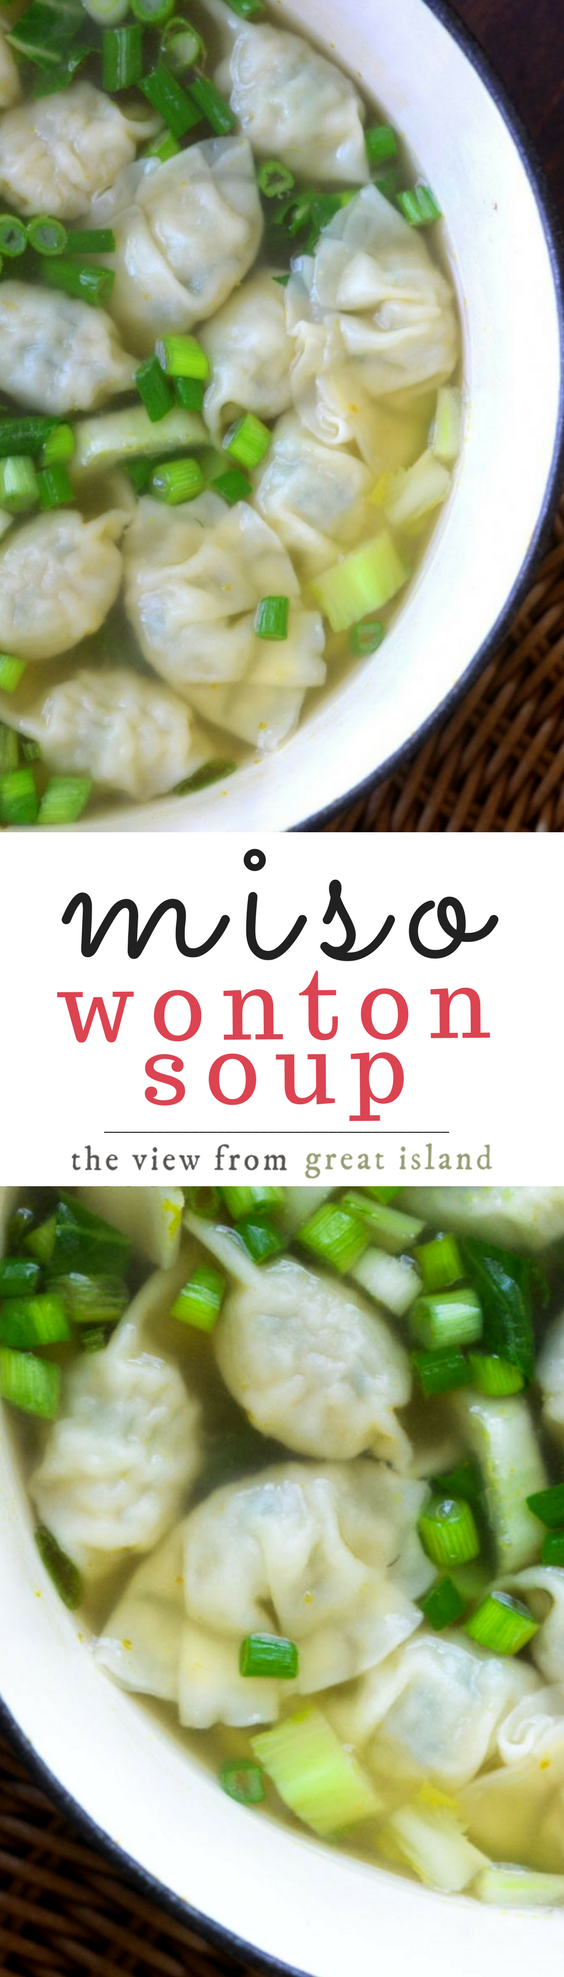 Miso Wonton Soup is healthy, hearty comfort food that can be on the table in less than 30 minutes.#30minutemeal  #miso #soup #healthysoup #Japanese #soy #superfood #healthysoup #dumplings #gyoza #chicken #noodlesoup #chickensoup #comfortfood #dumplingsoup #misosoup